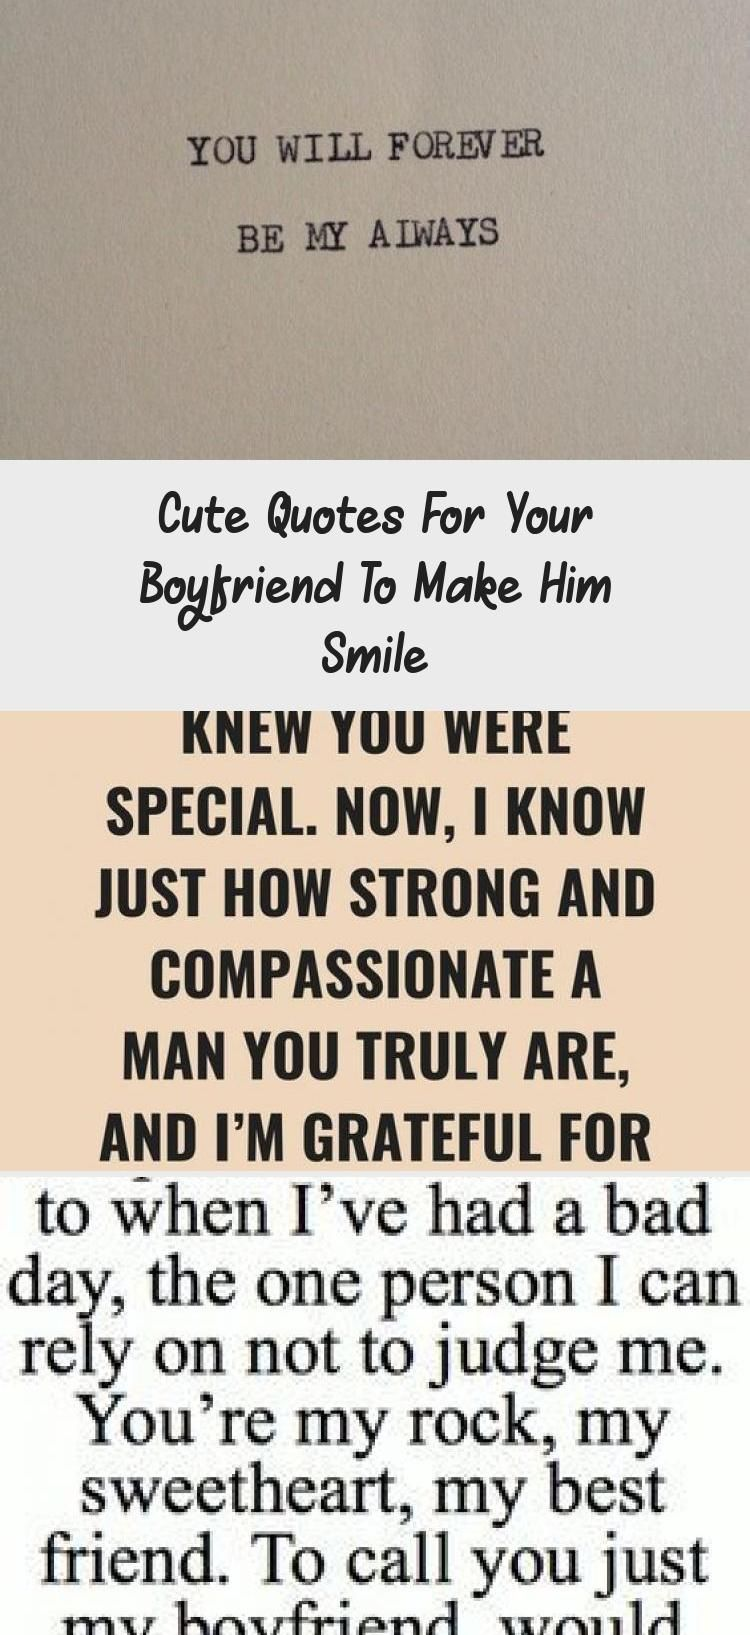 Cute Quotes For Your Boyfriend To Make Him Smile Be Yourself